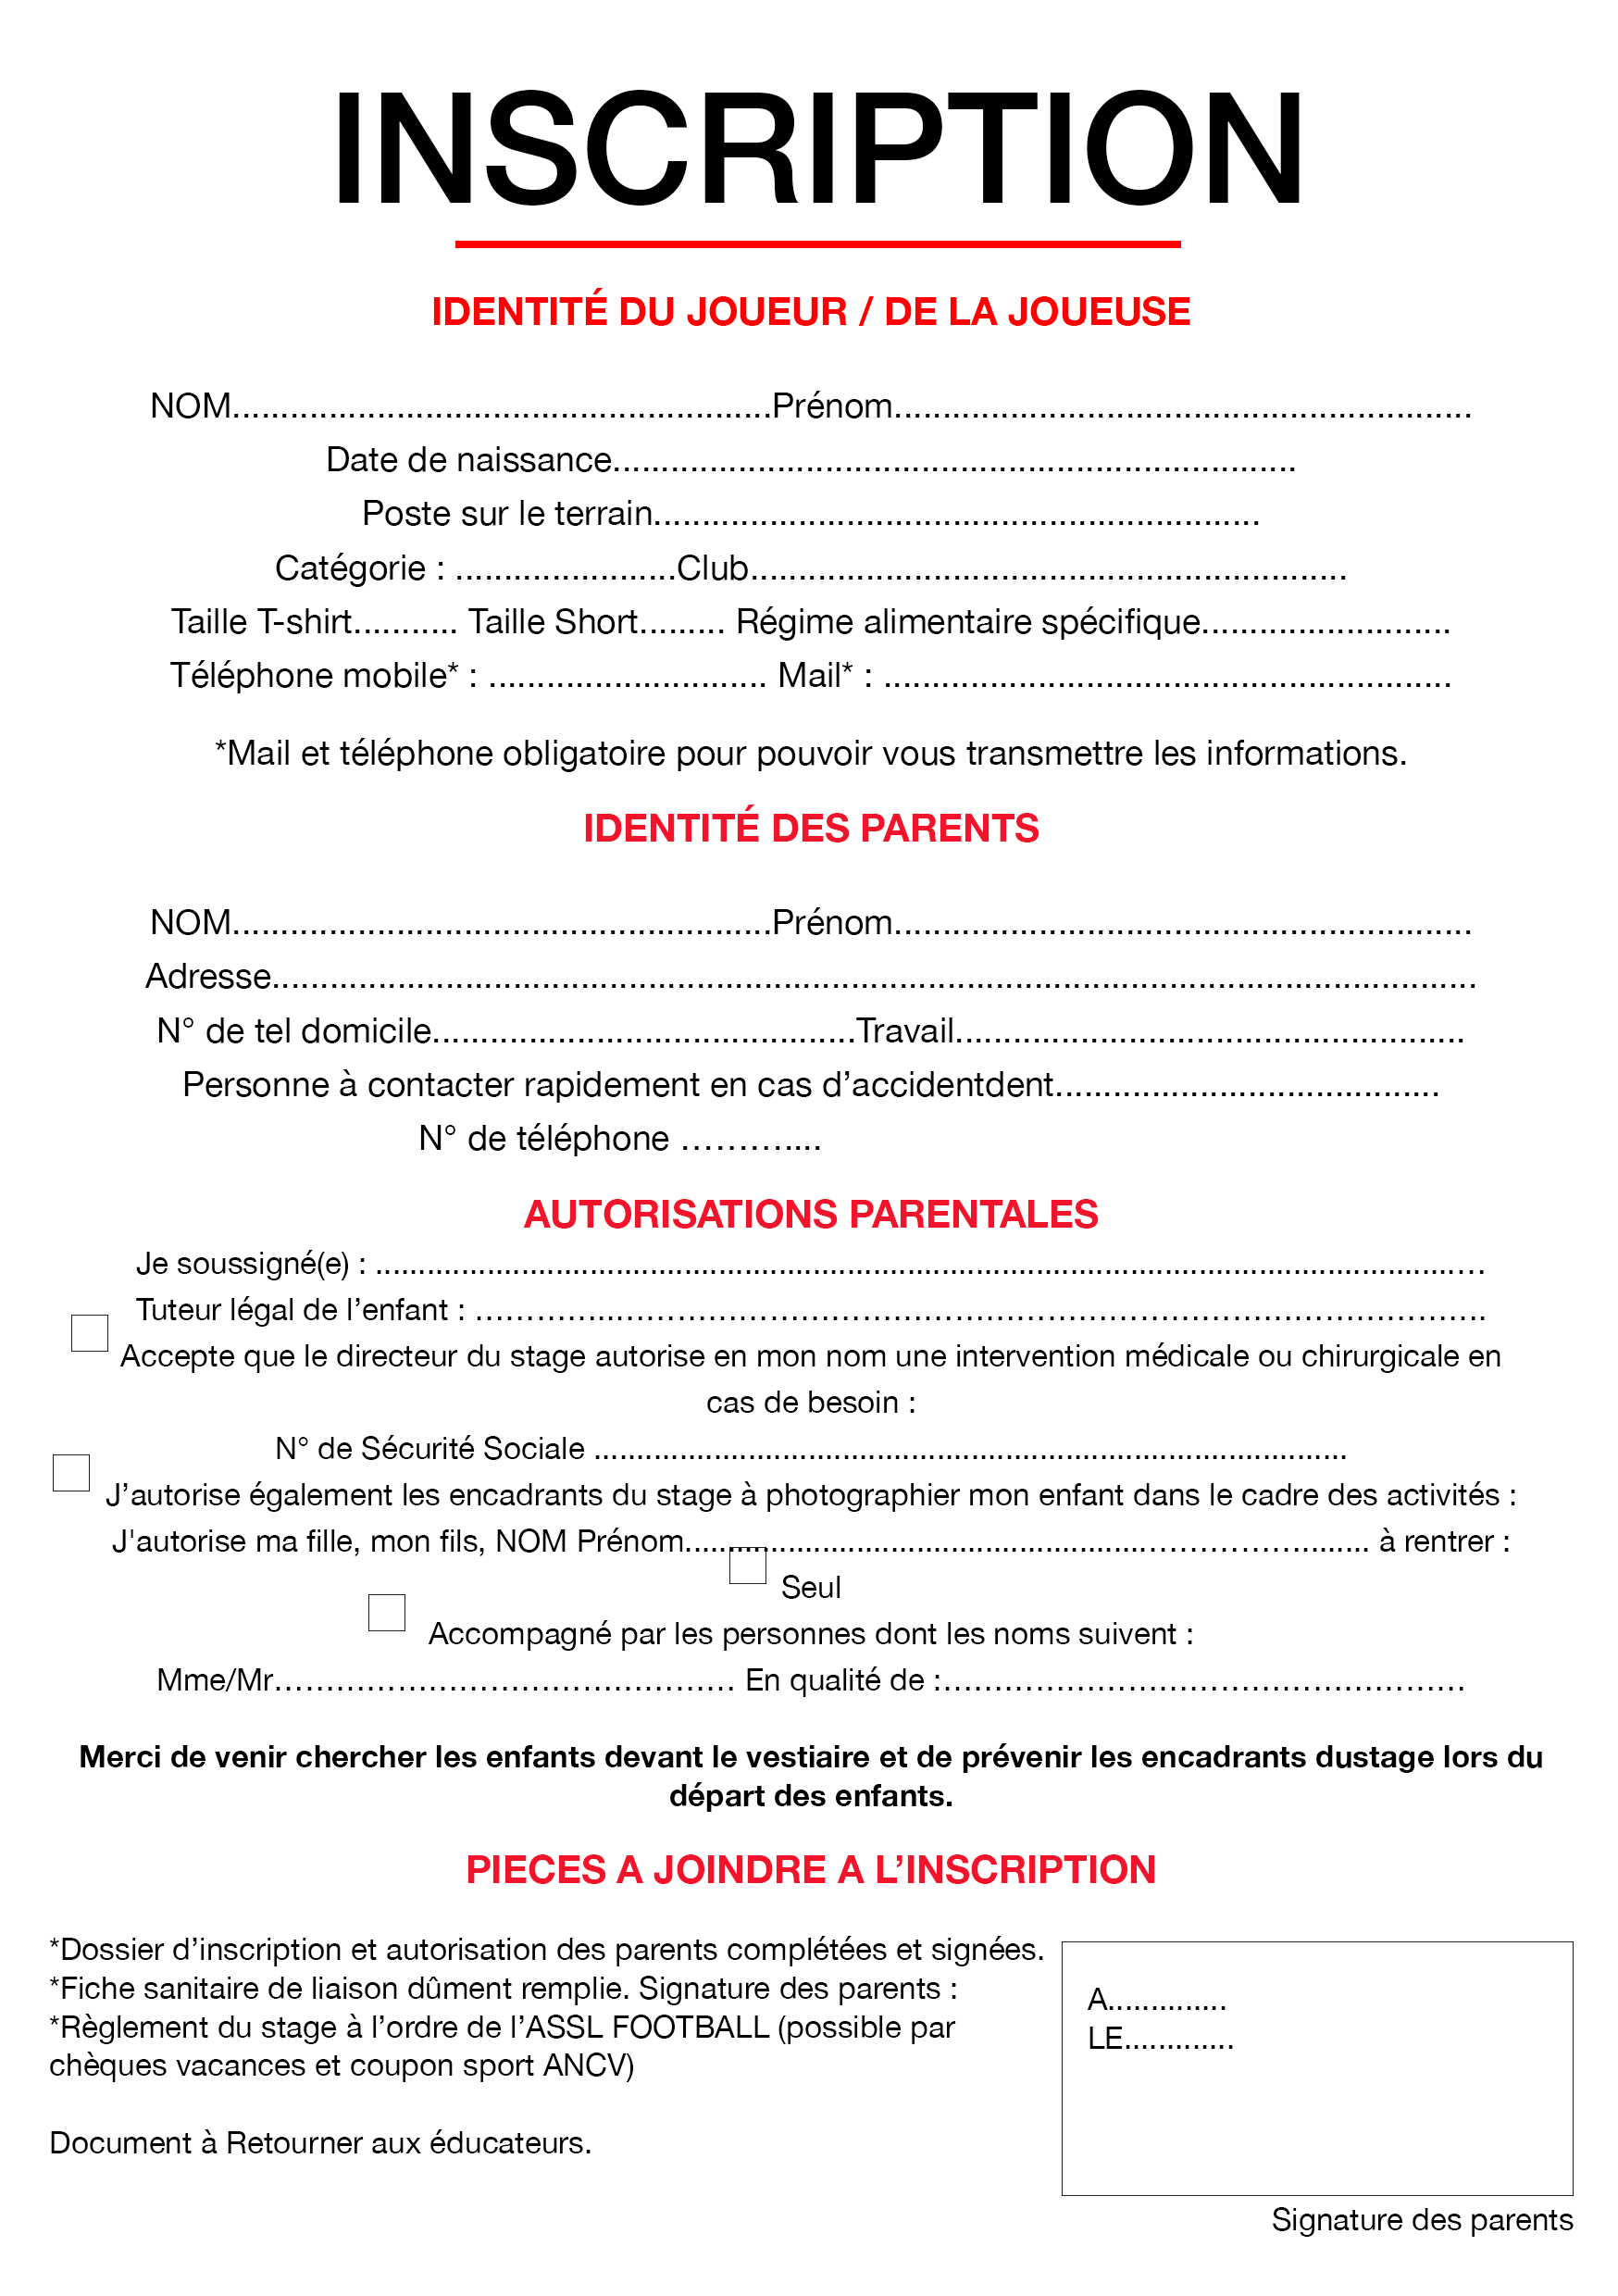 FLYER-stage-page4-2.jpg